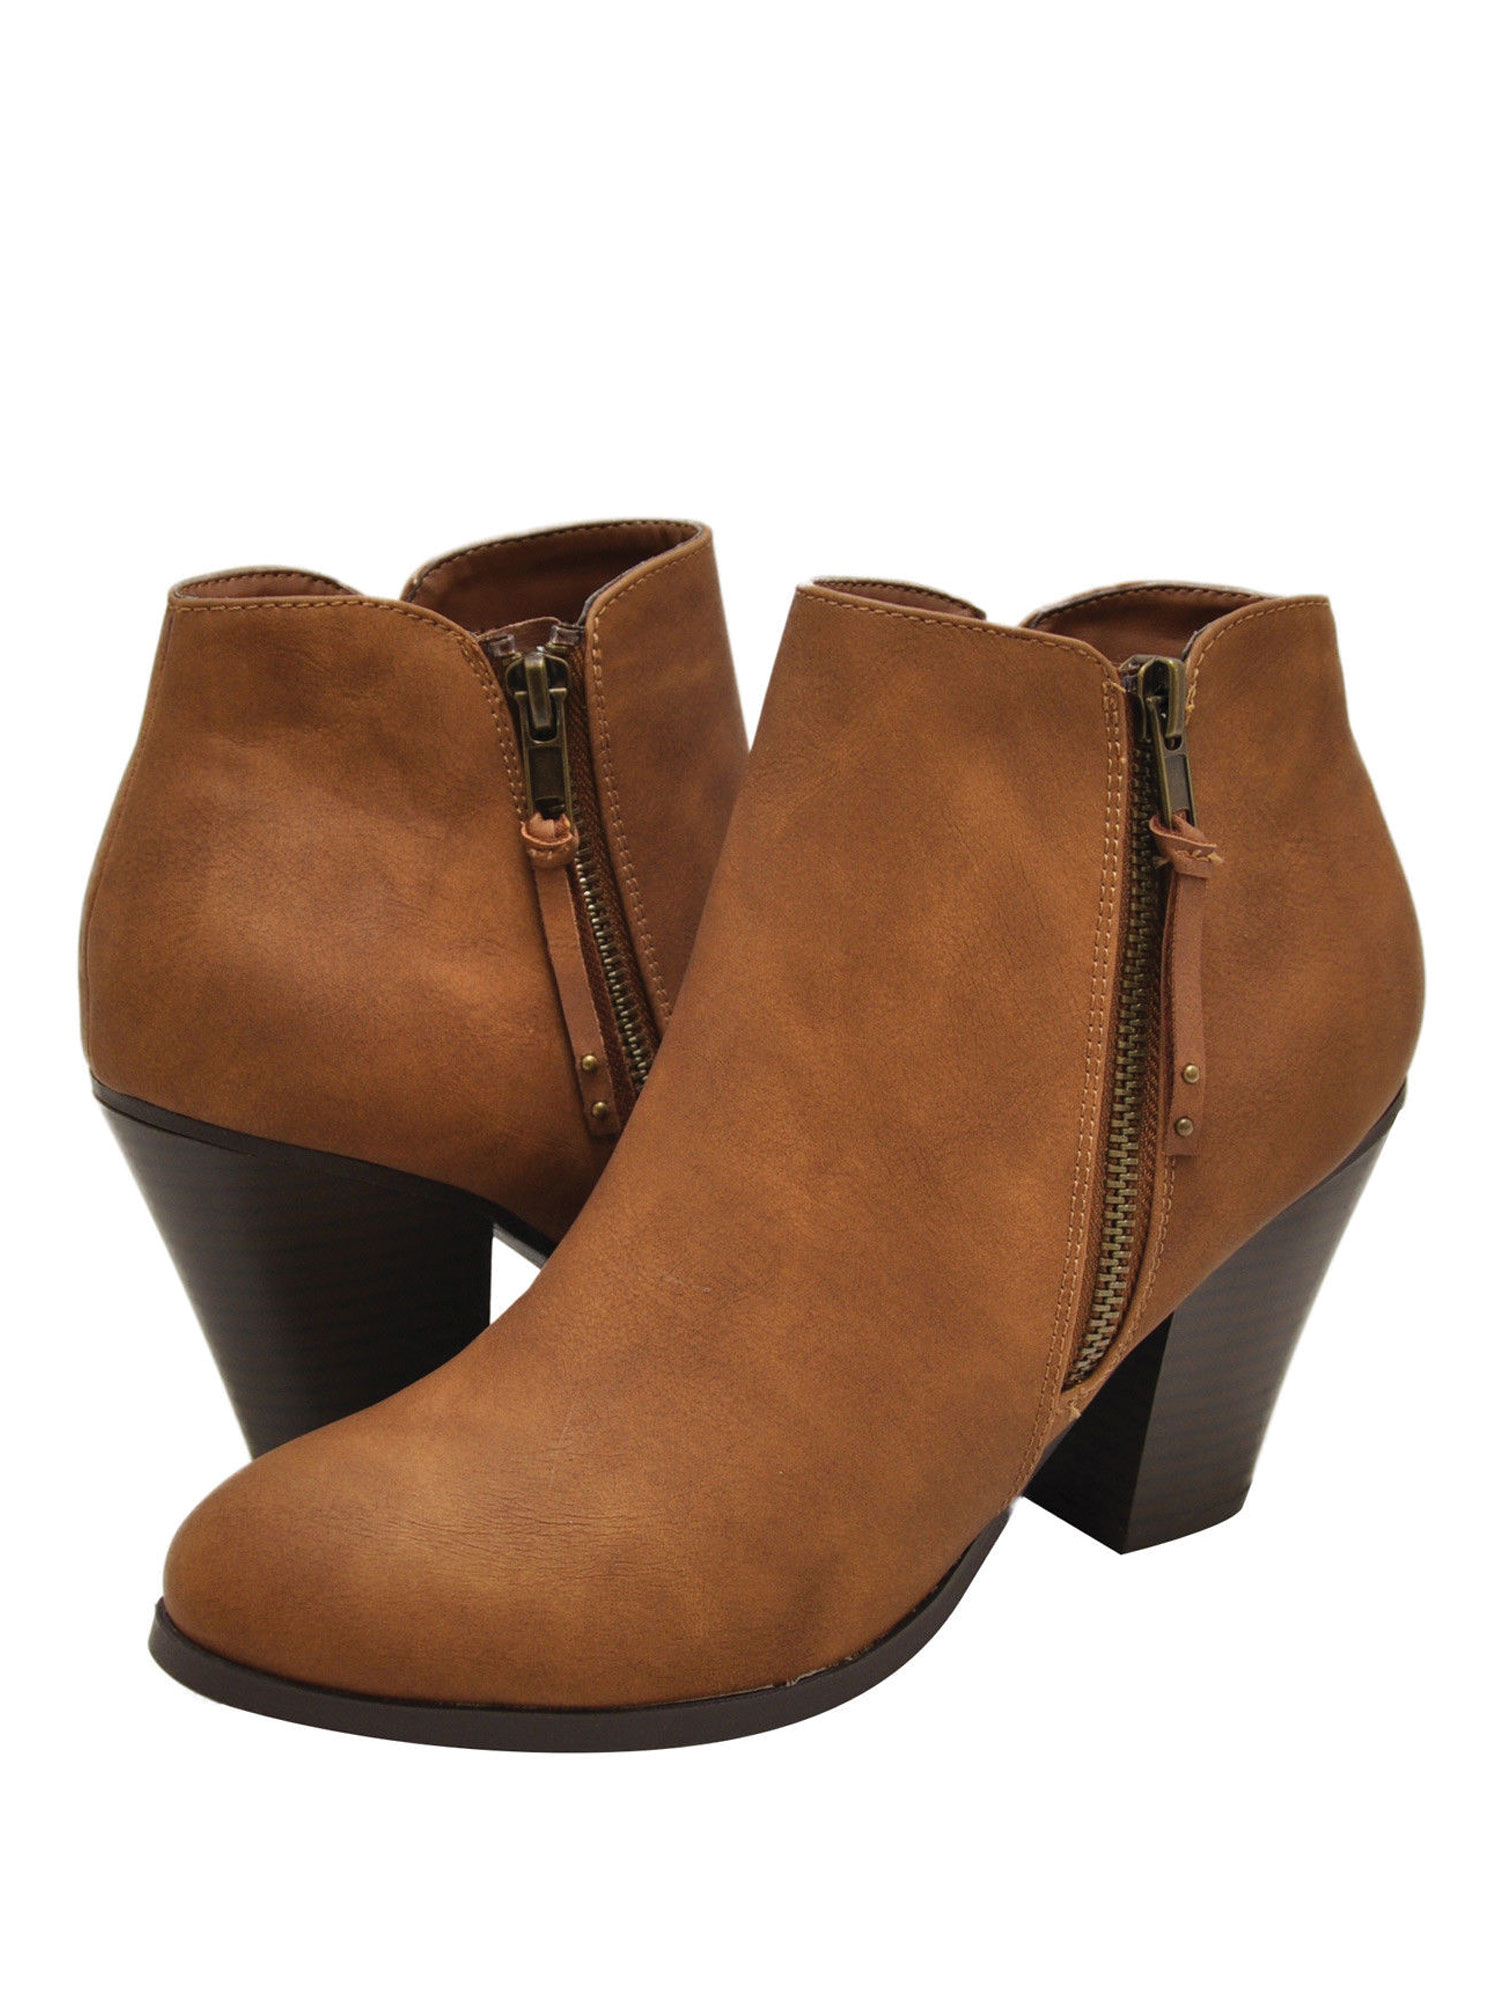 City Classified Keira-S Women's Chunky Heel Ankle Booties